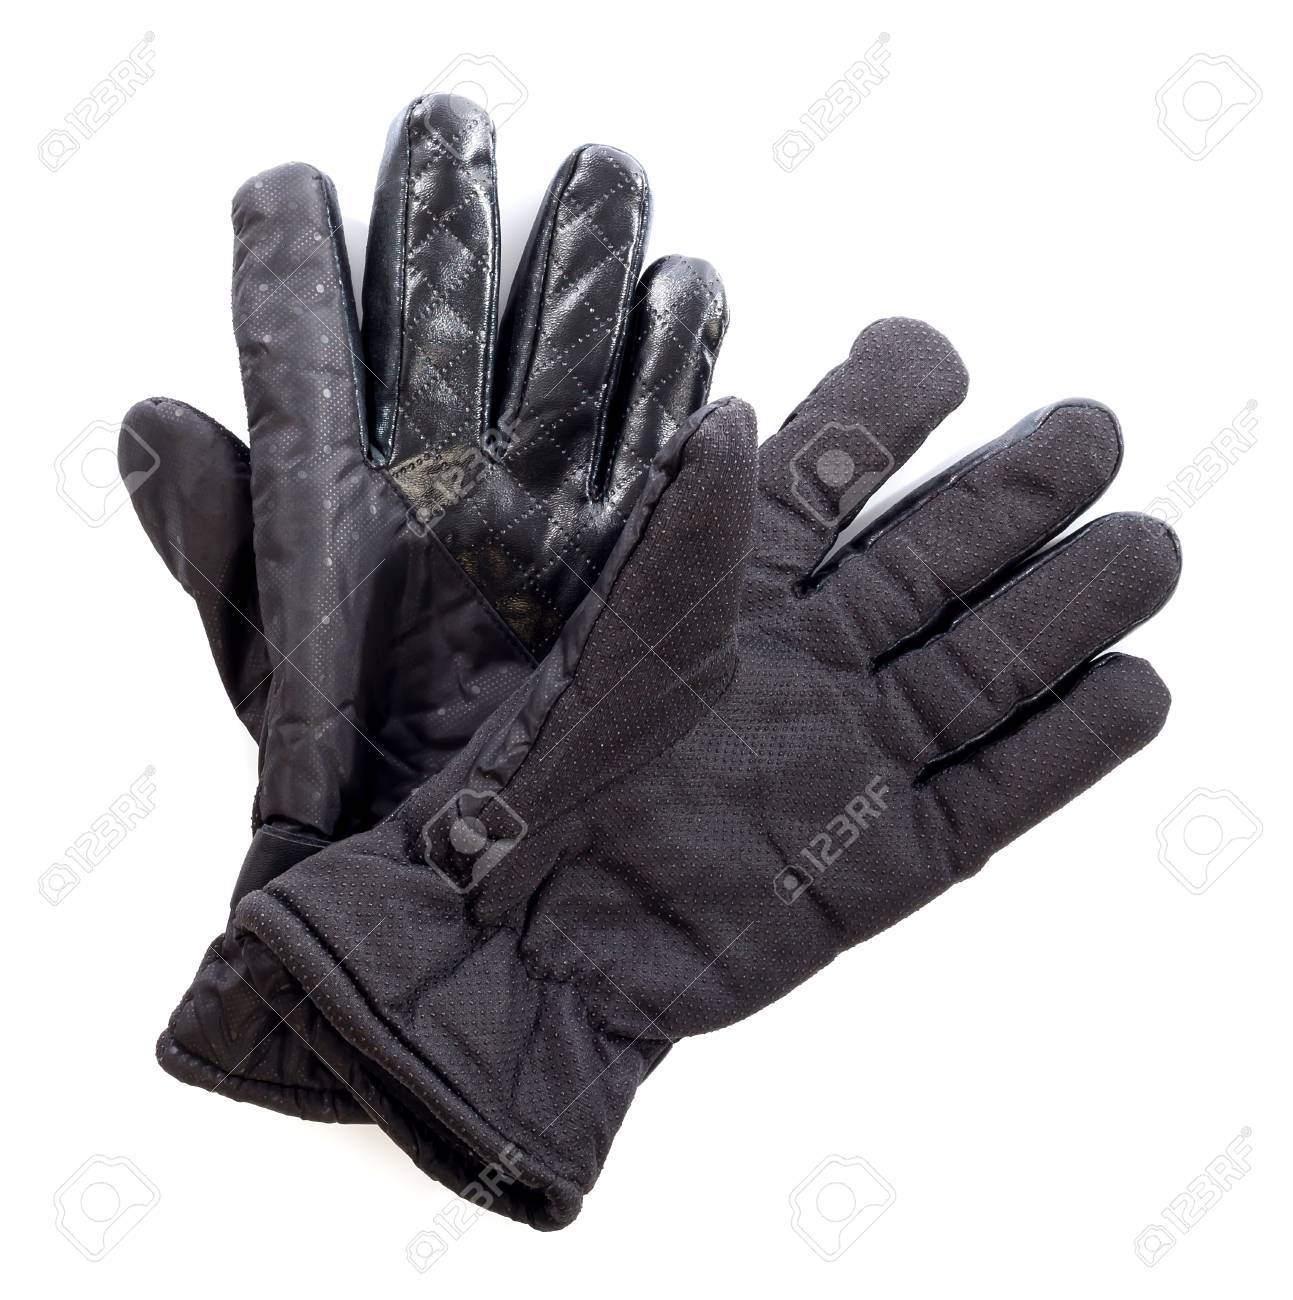 arriving sale retailer half price back leather driving gloves on a white background